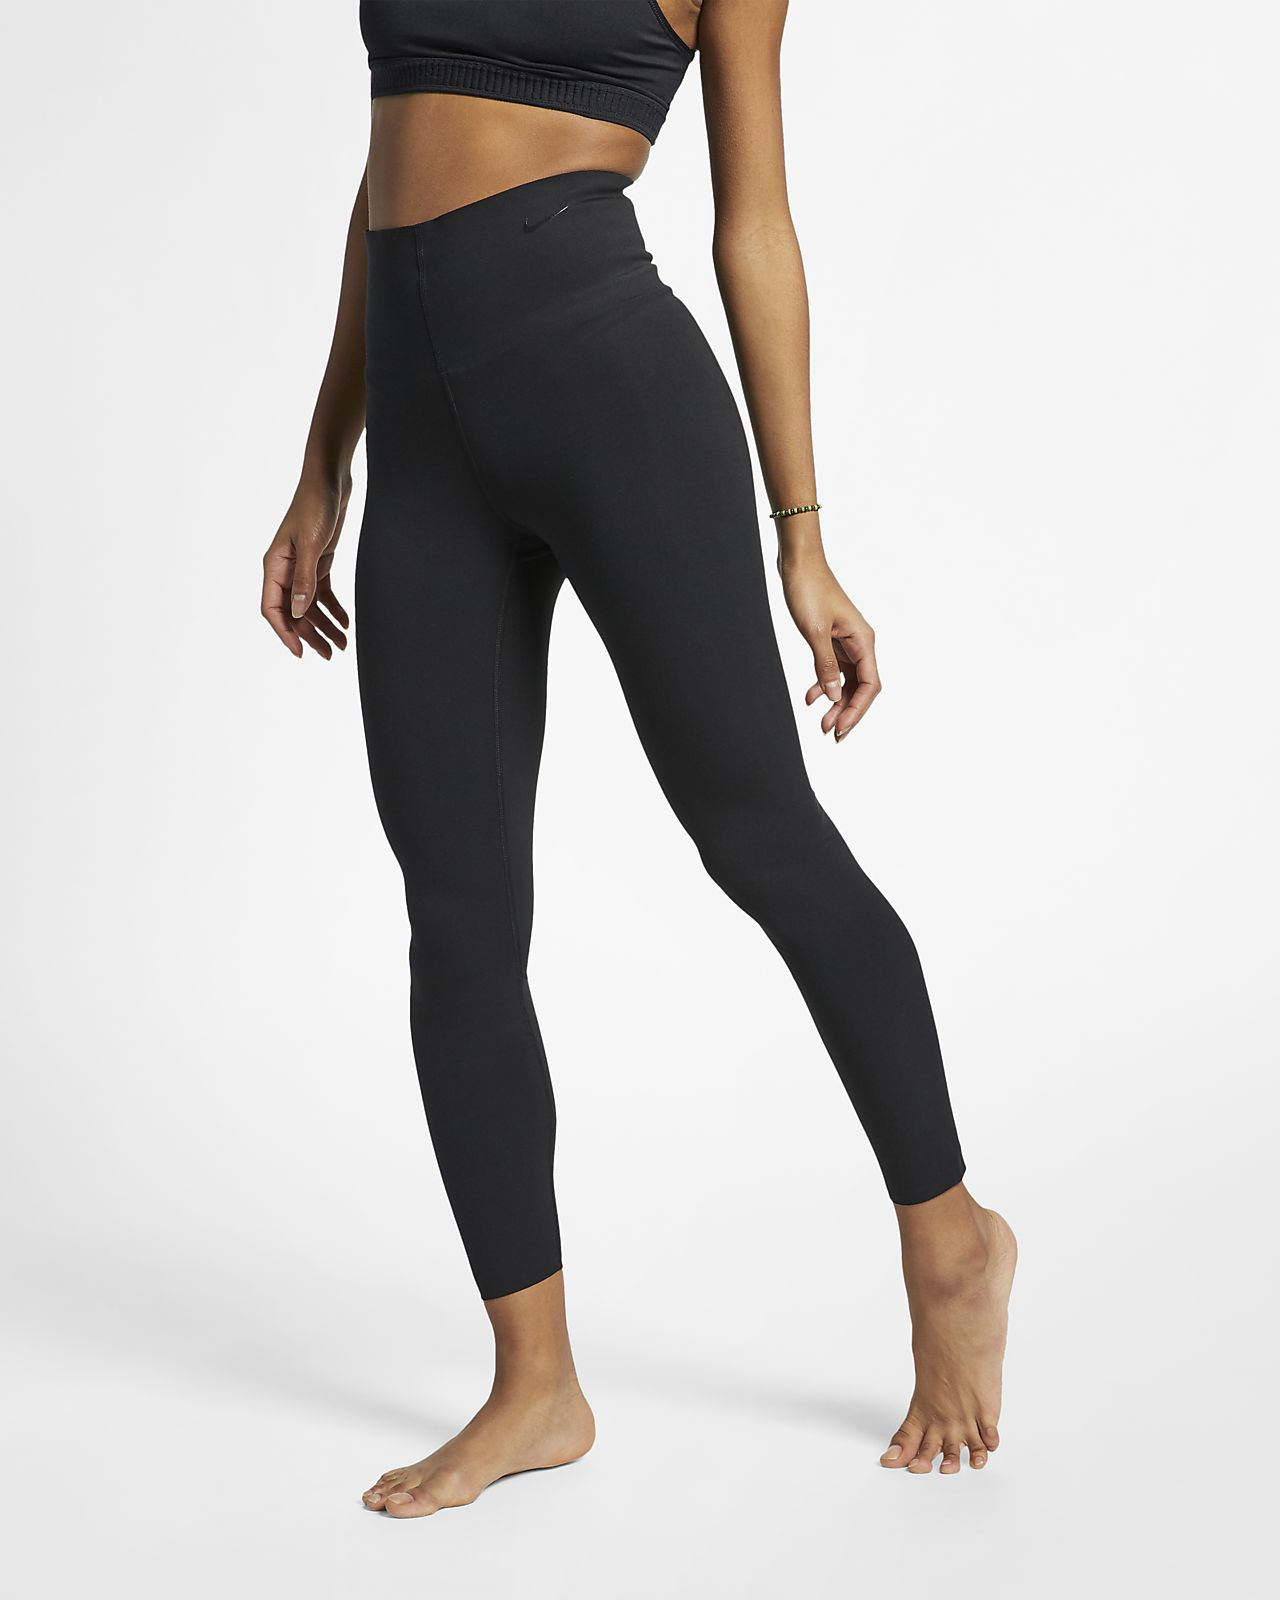 Nike Sculpt Luxe Women's 7/8 Tights